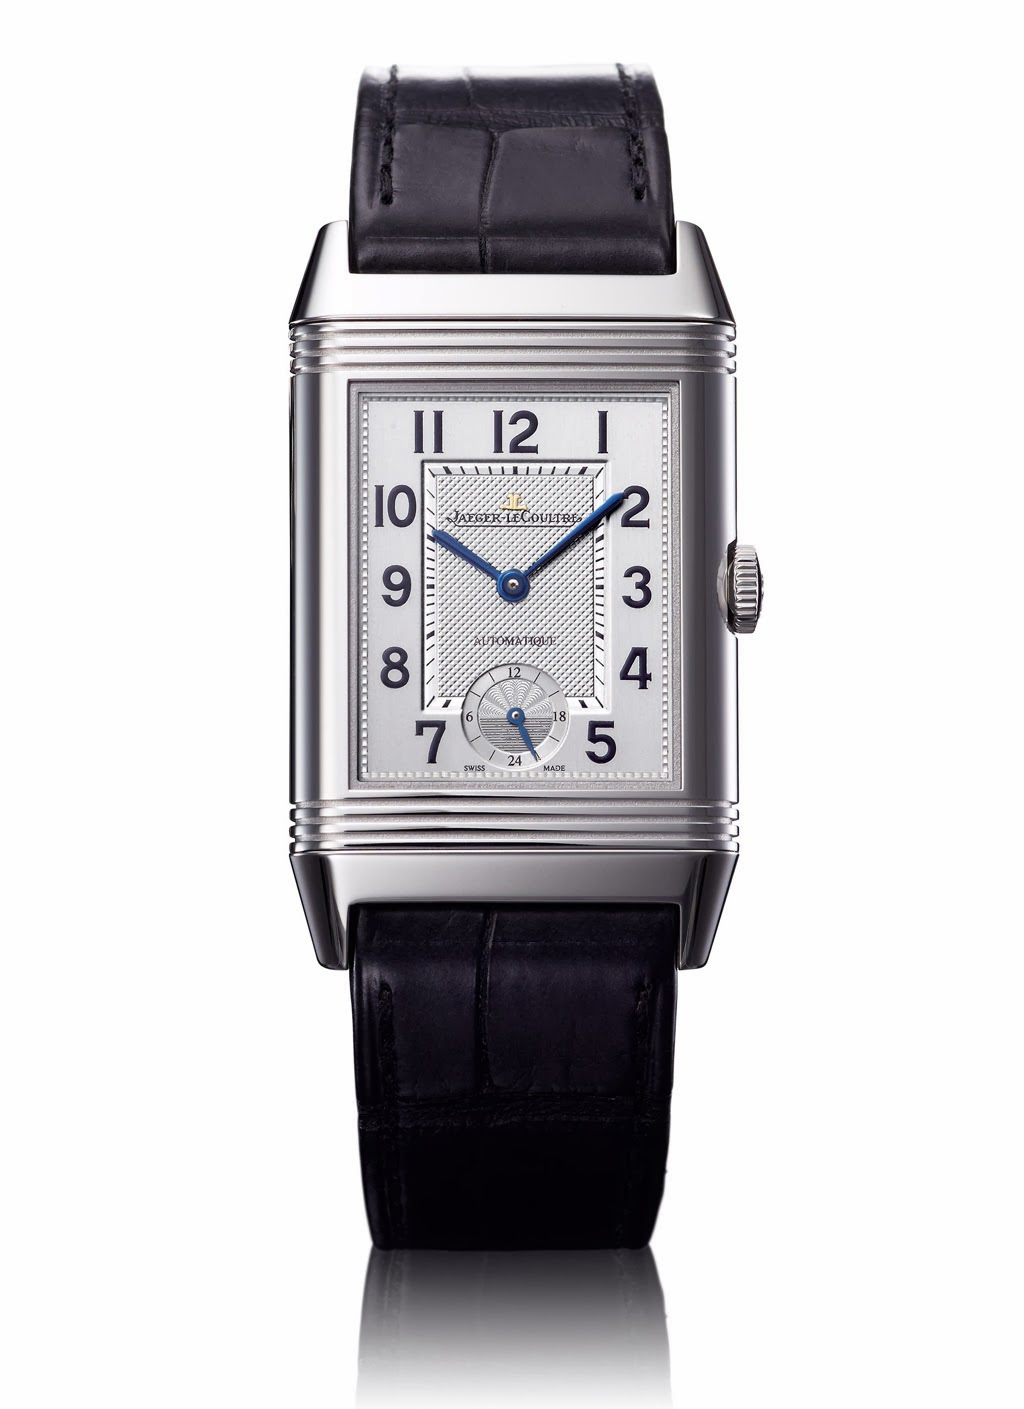 SIHH 2014: Jaeger-LeCoultre